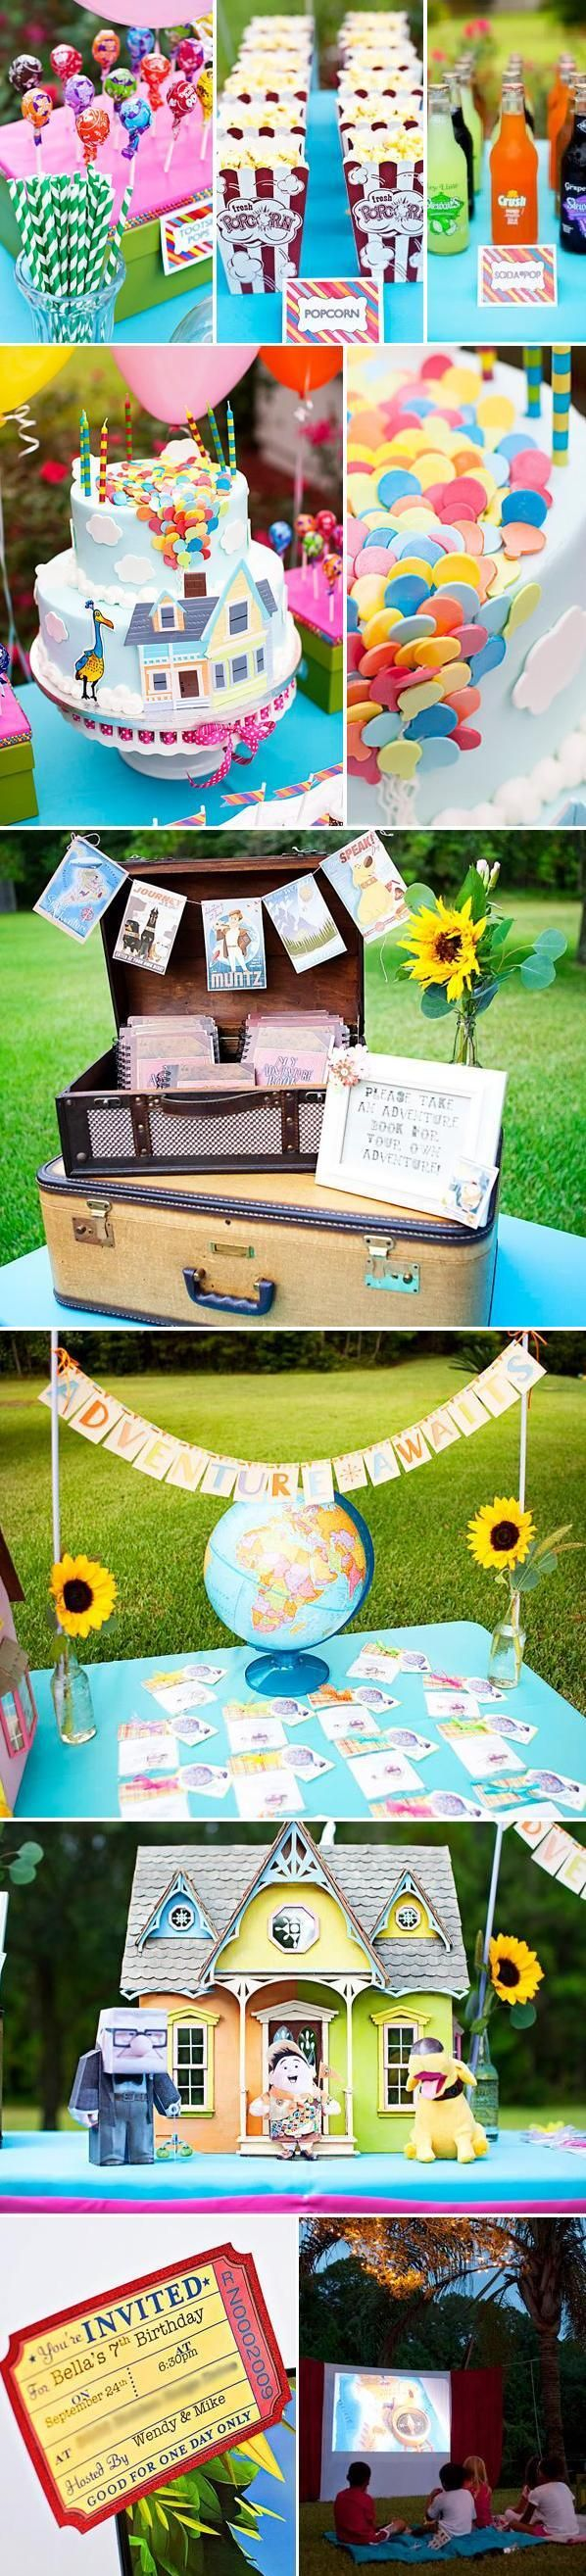 UP inspired outdoor movie night party.SUCH A CUTE IDEA!!!